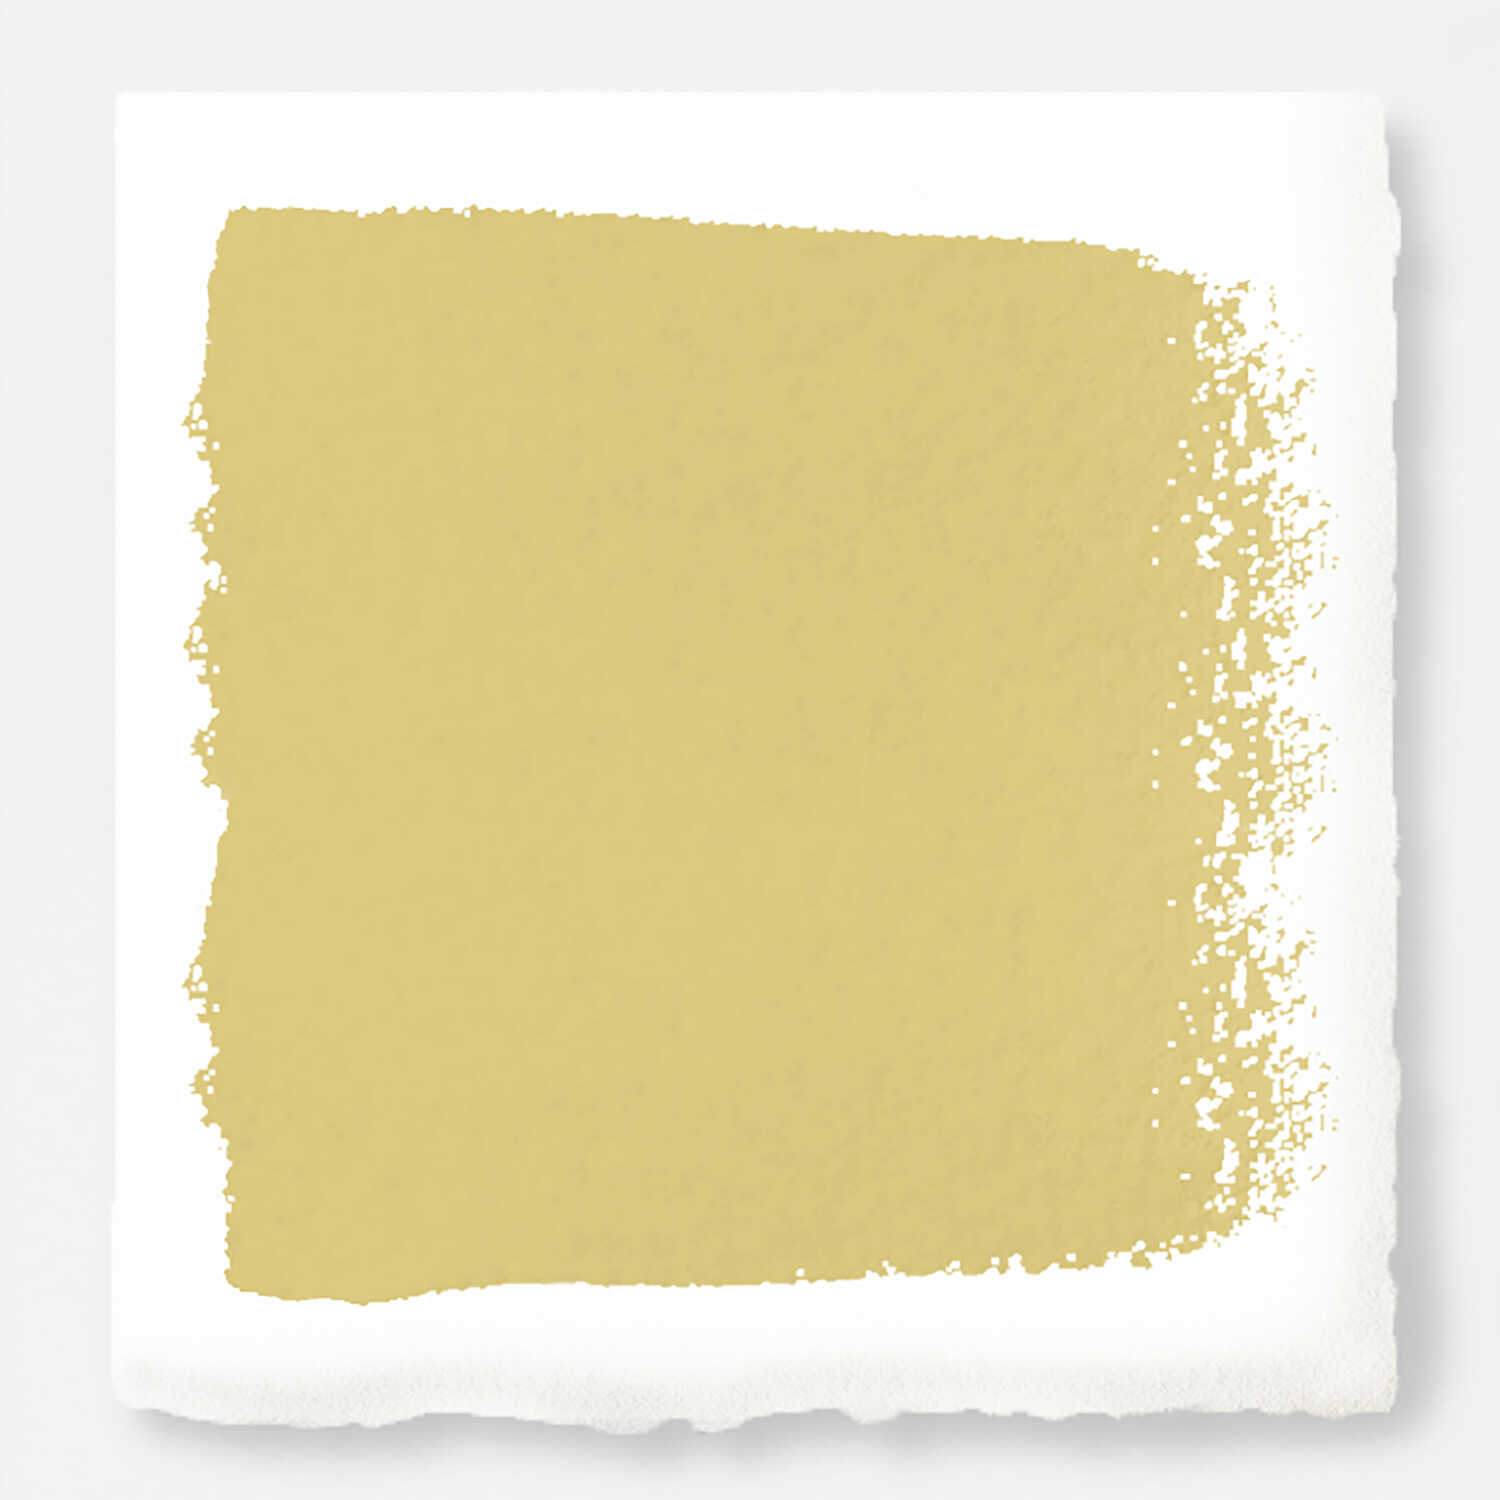 Magnolia Home  Satin  Heirloom Yellow  Exterior Paint and Primer  1 gal.